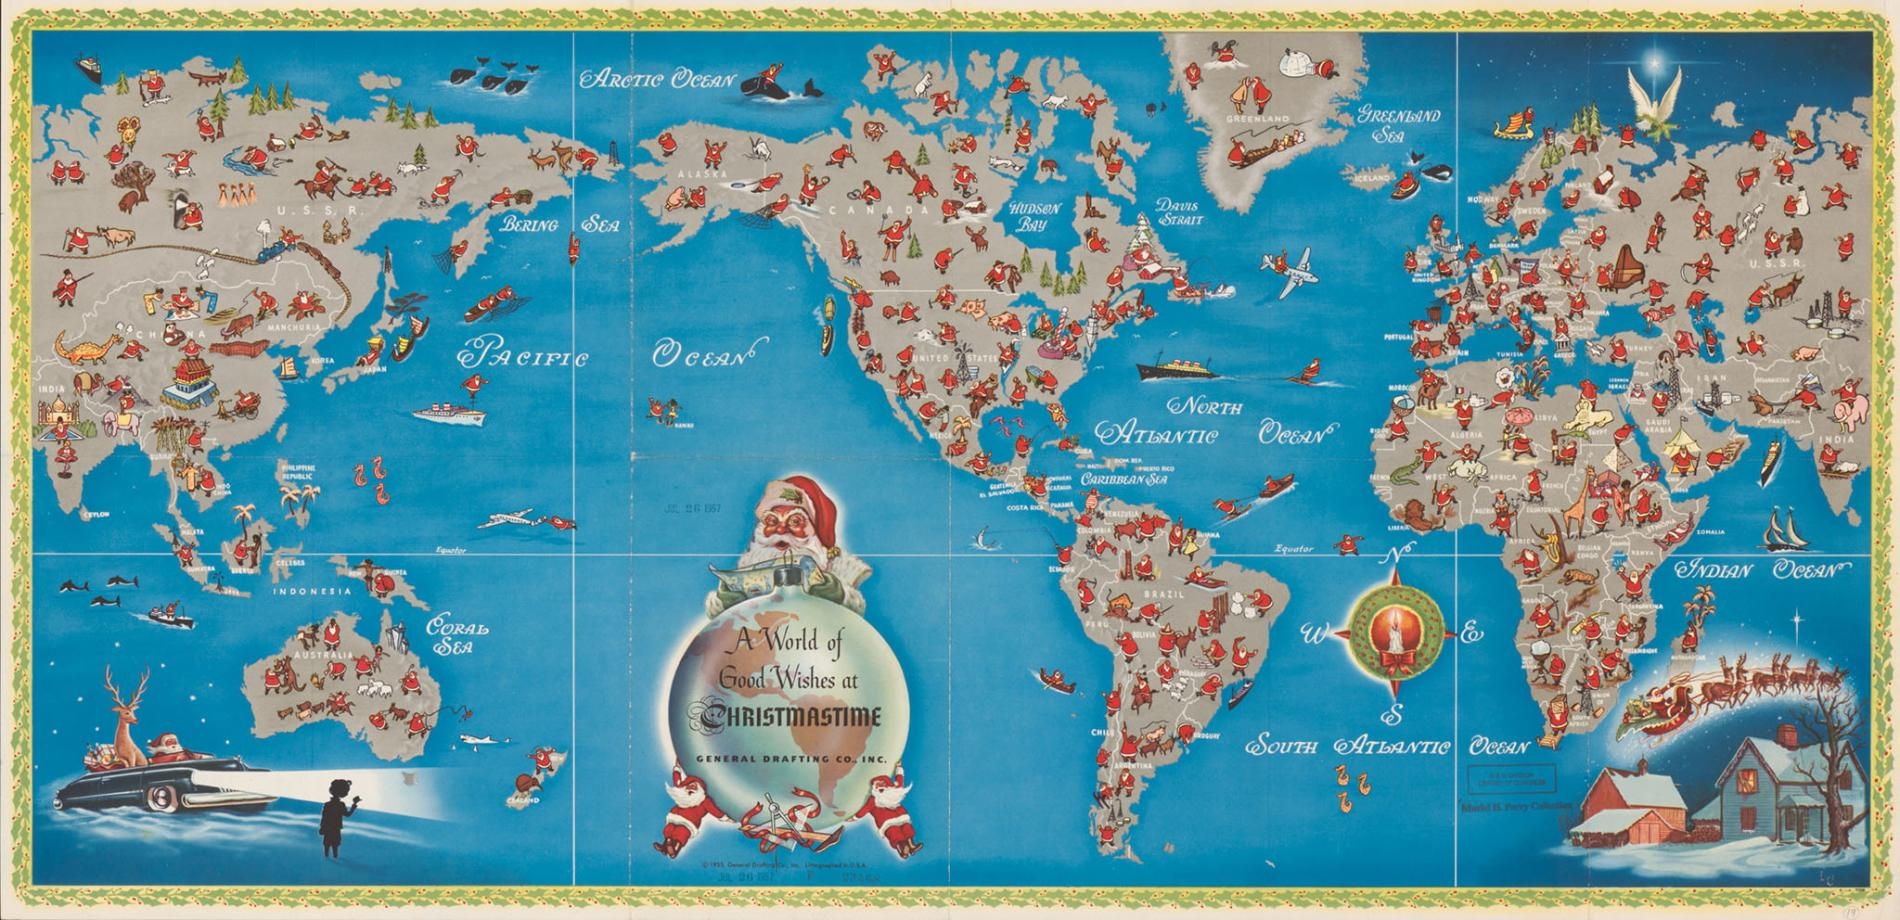 SANTA CLAUS MAP DIEULOIS